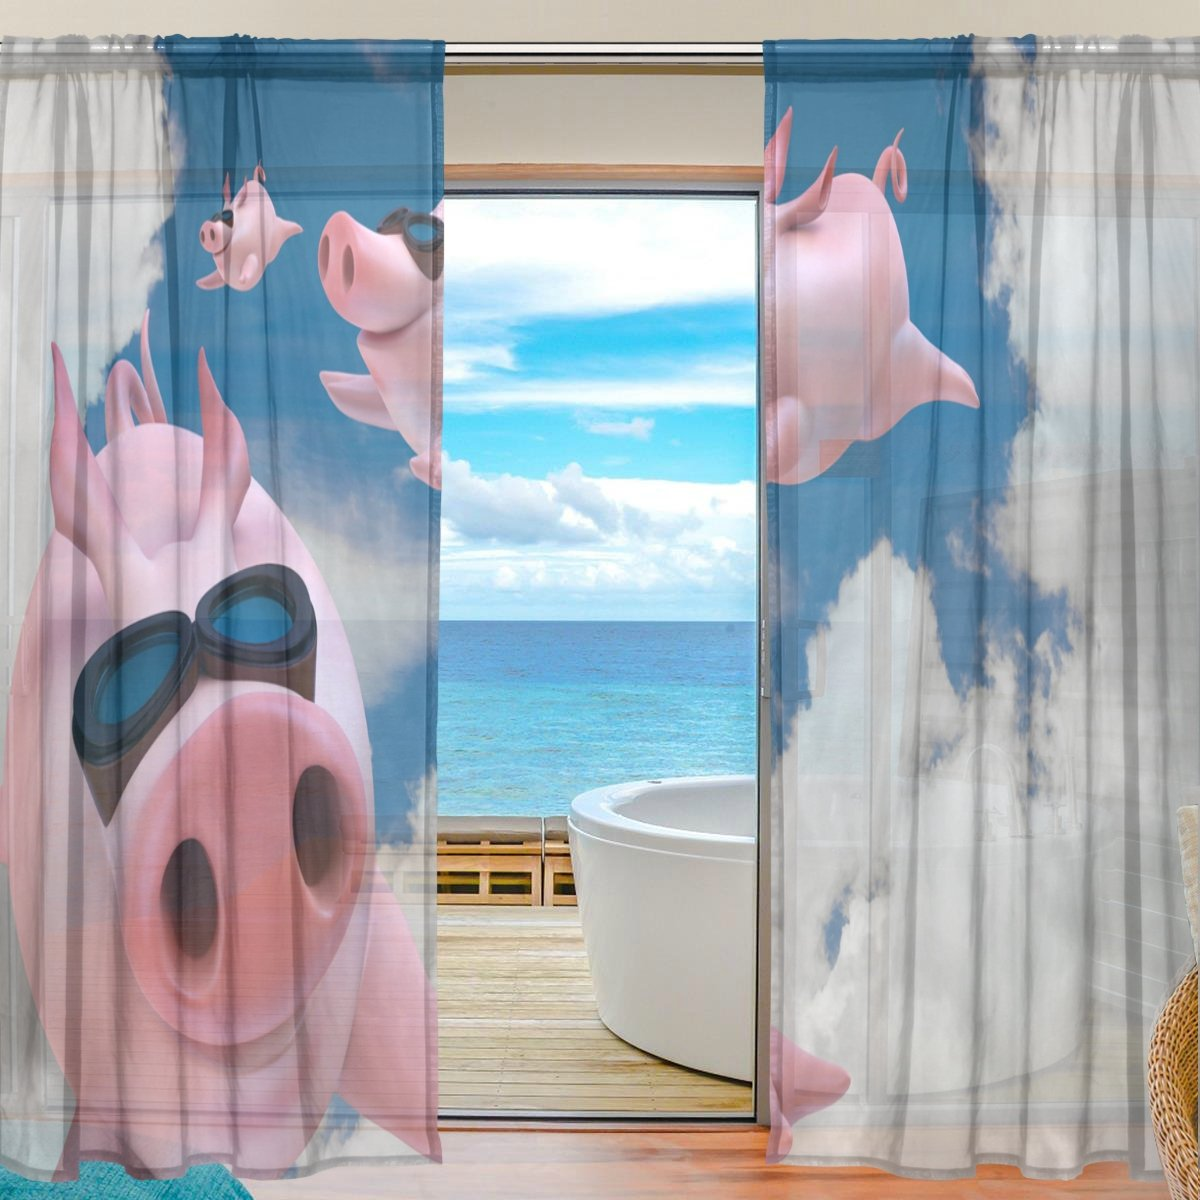 SEULIFE Window Sheer Curtain, Funny Animal Cute Flying Pig Voile Curtain Drapes for Door Kitchen Living Room Bedroom 55x78 inches 2 Panels